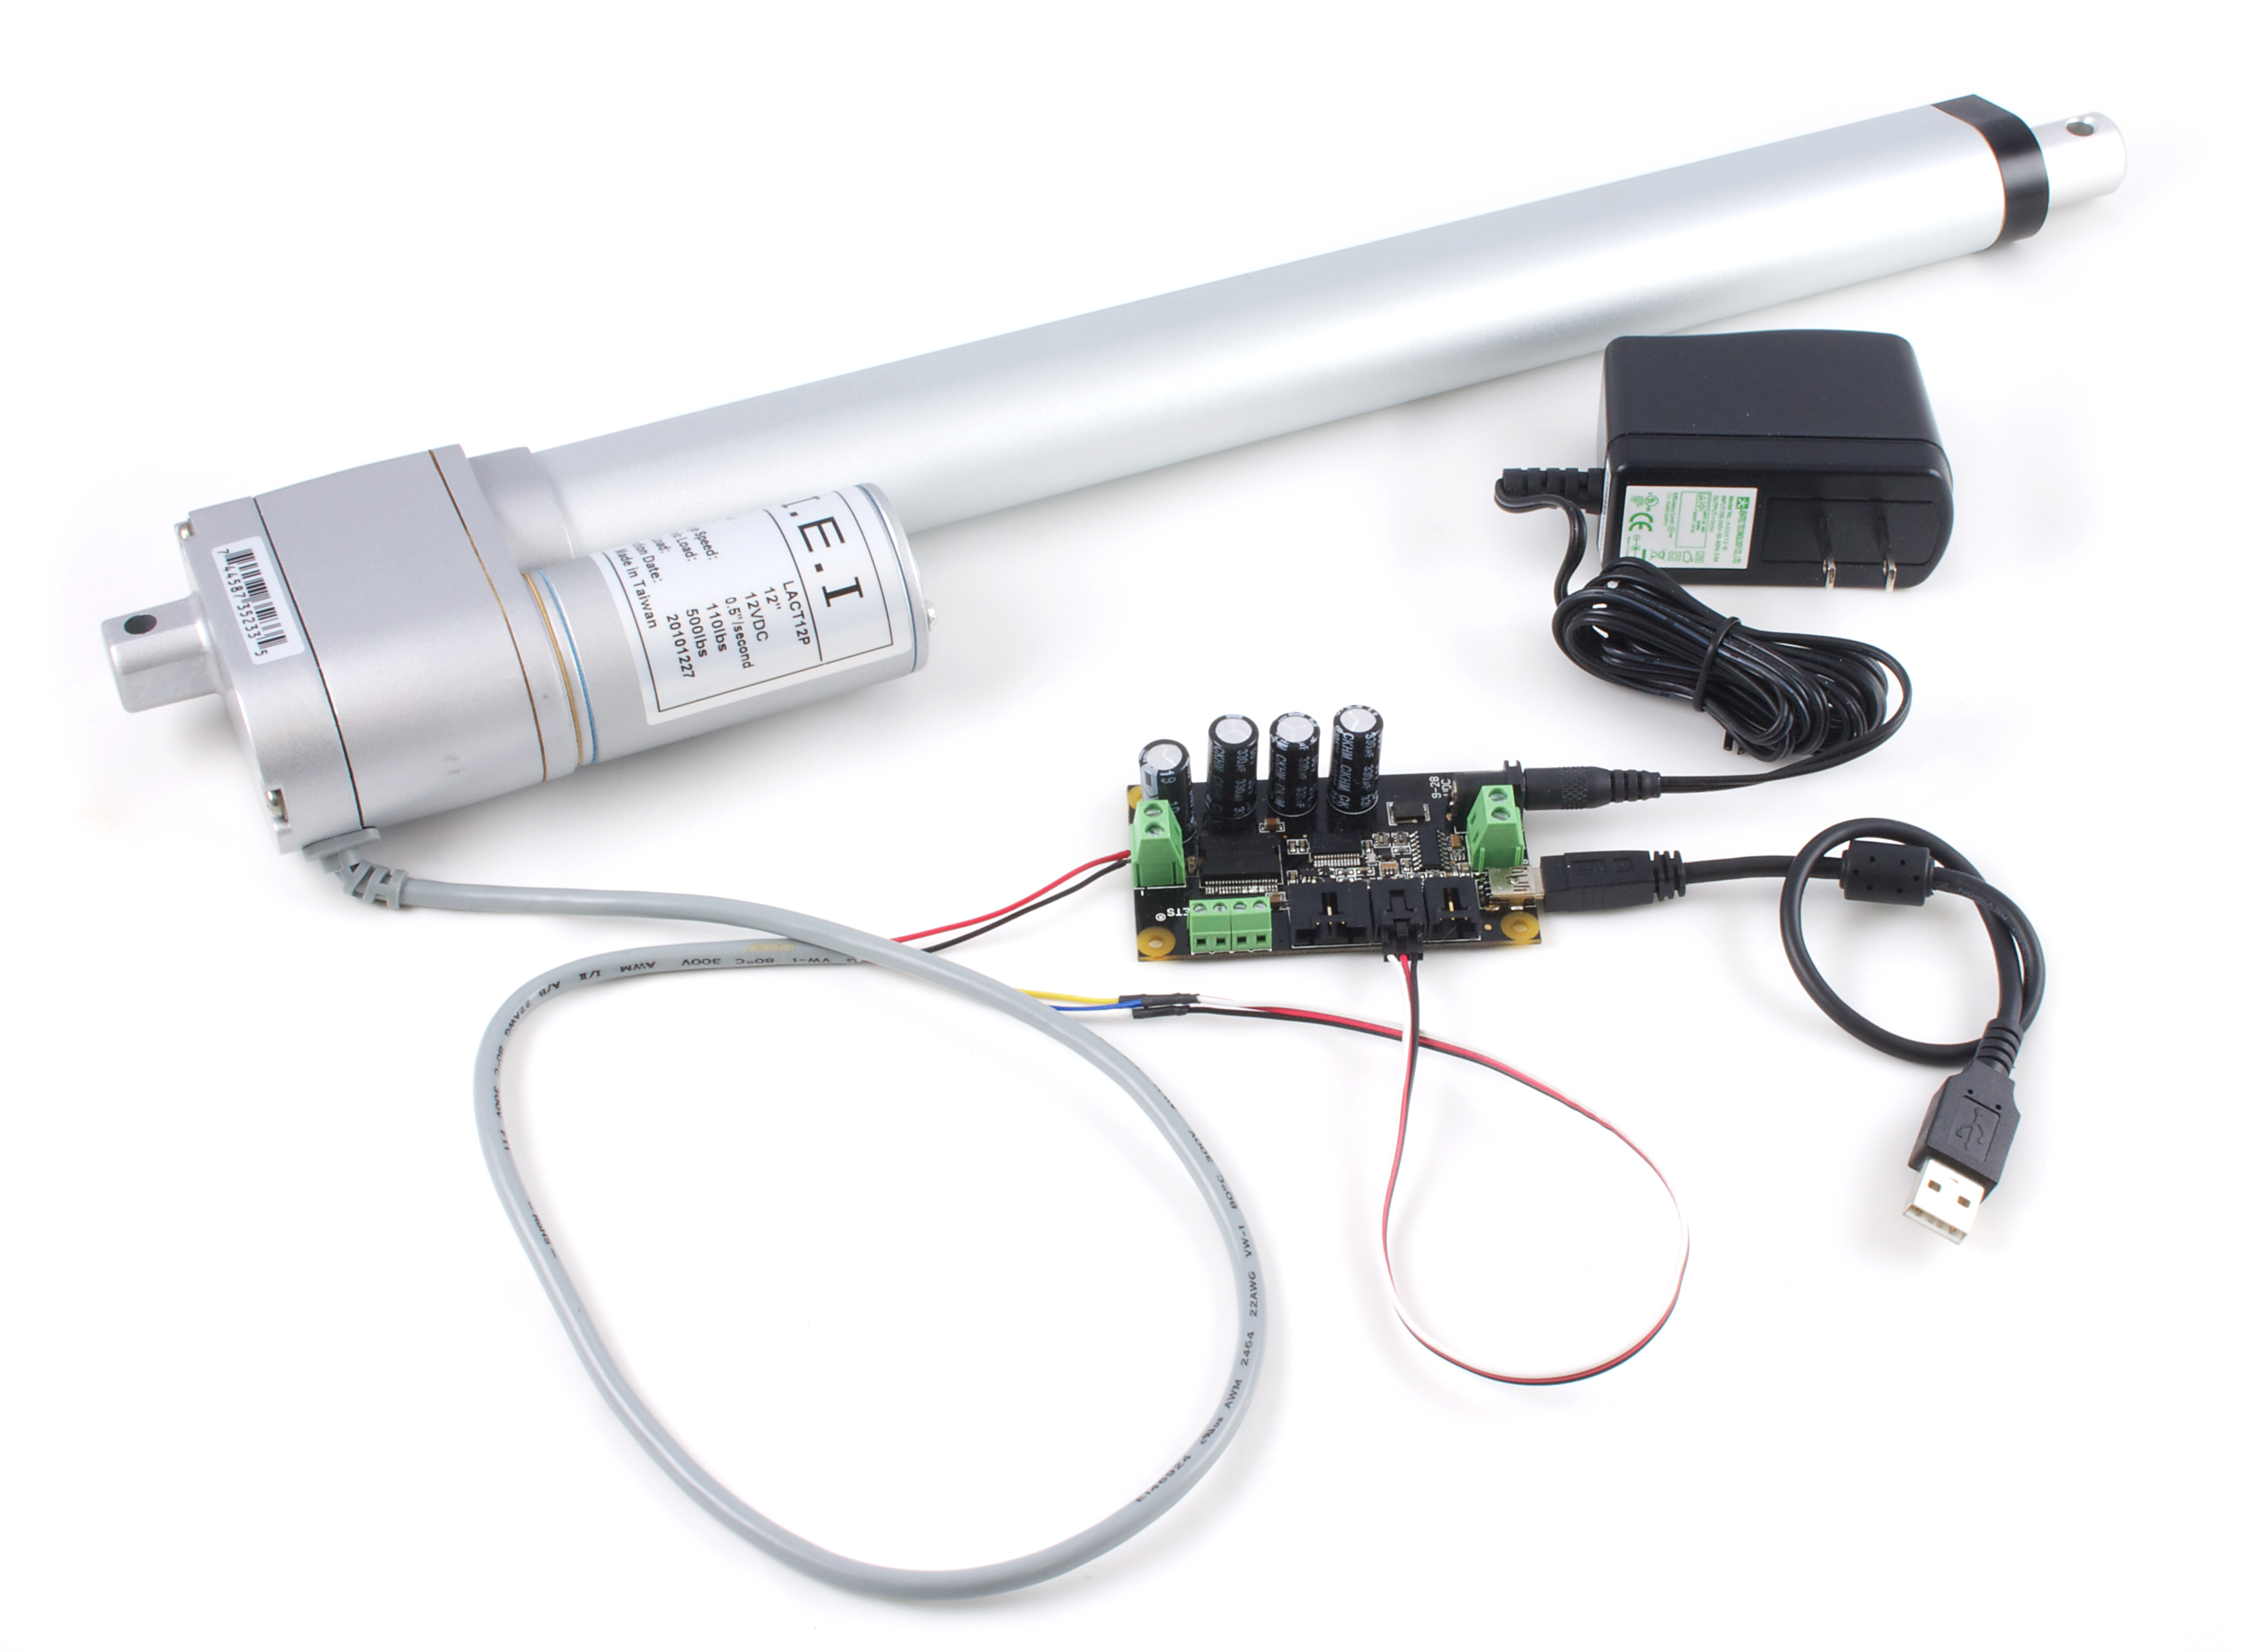 Phidgets Projects Linear Actuator Pid Control Wiring A Is Motor That Has Been Geared To Extend And Contract An Arm Rather Than Rotate Shaft Many Applications Use Actuators